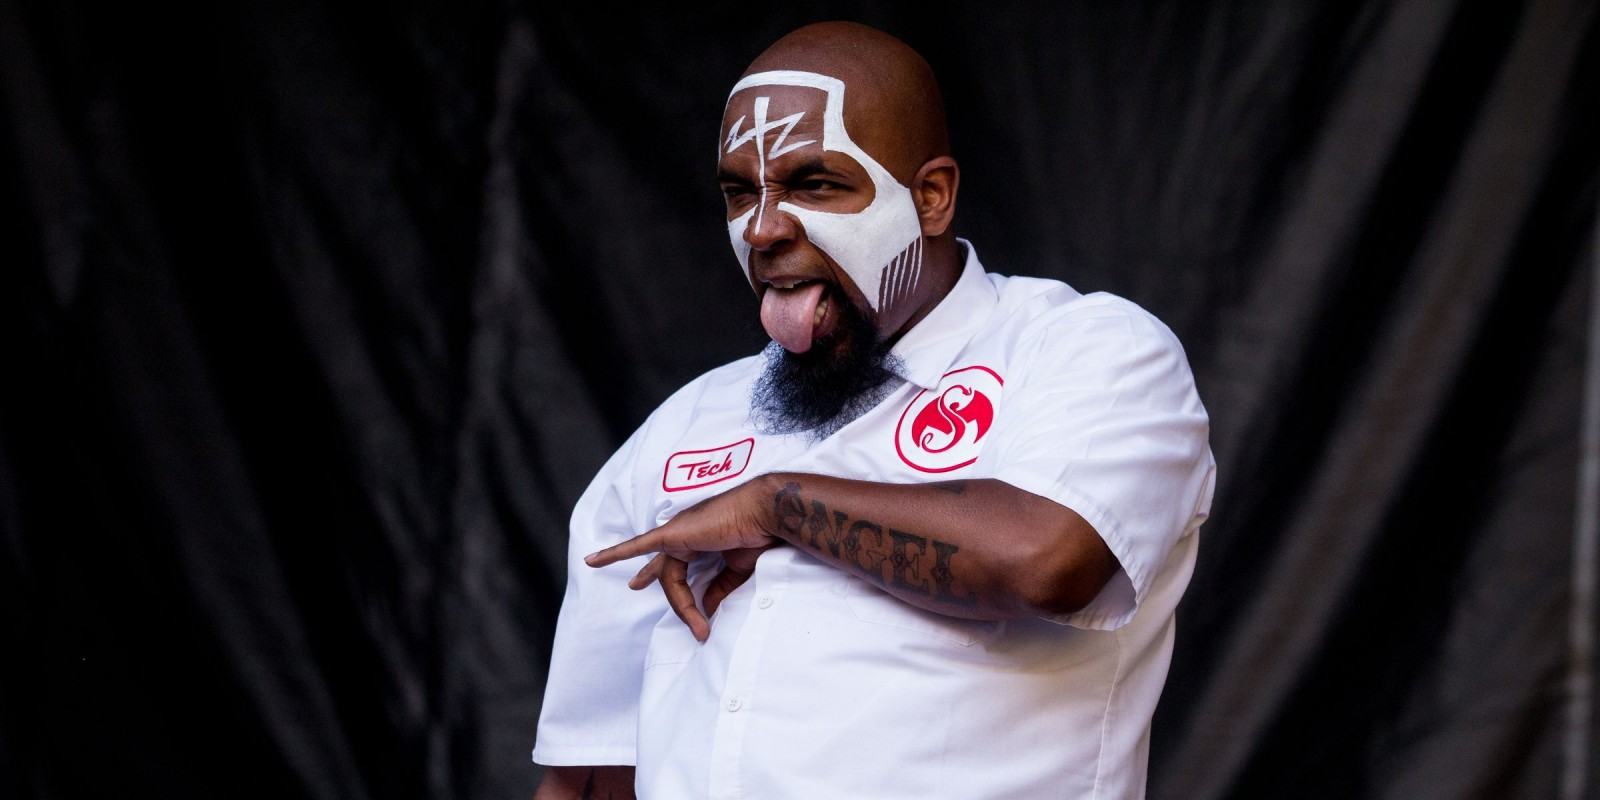 Tech N9ne at the 2014 Aftershock music festival in Sacramento, CA